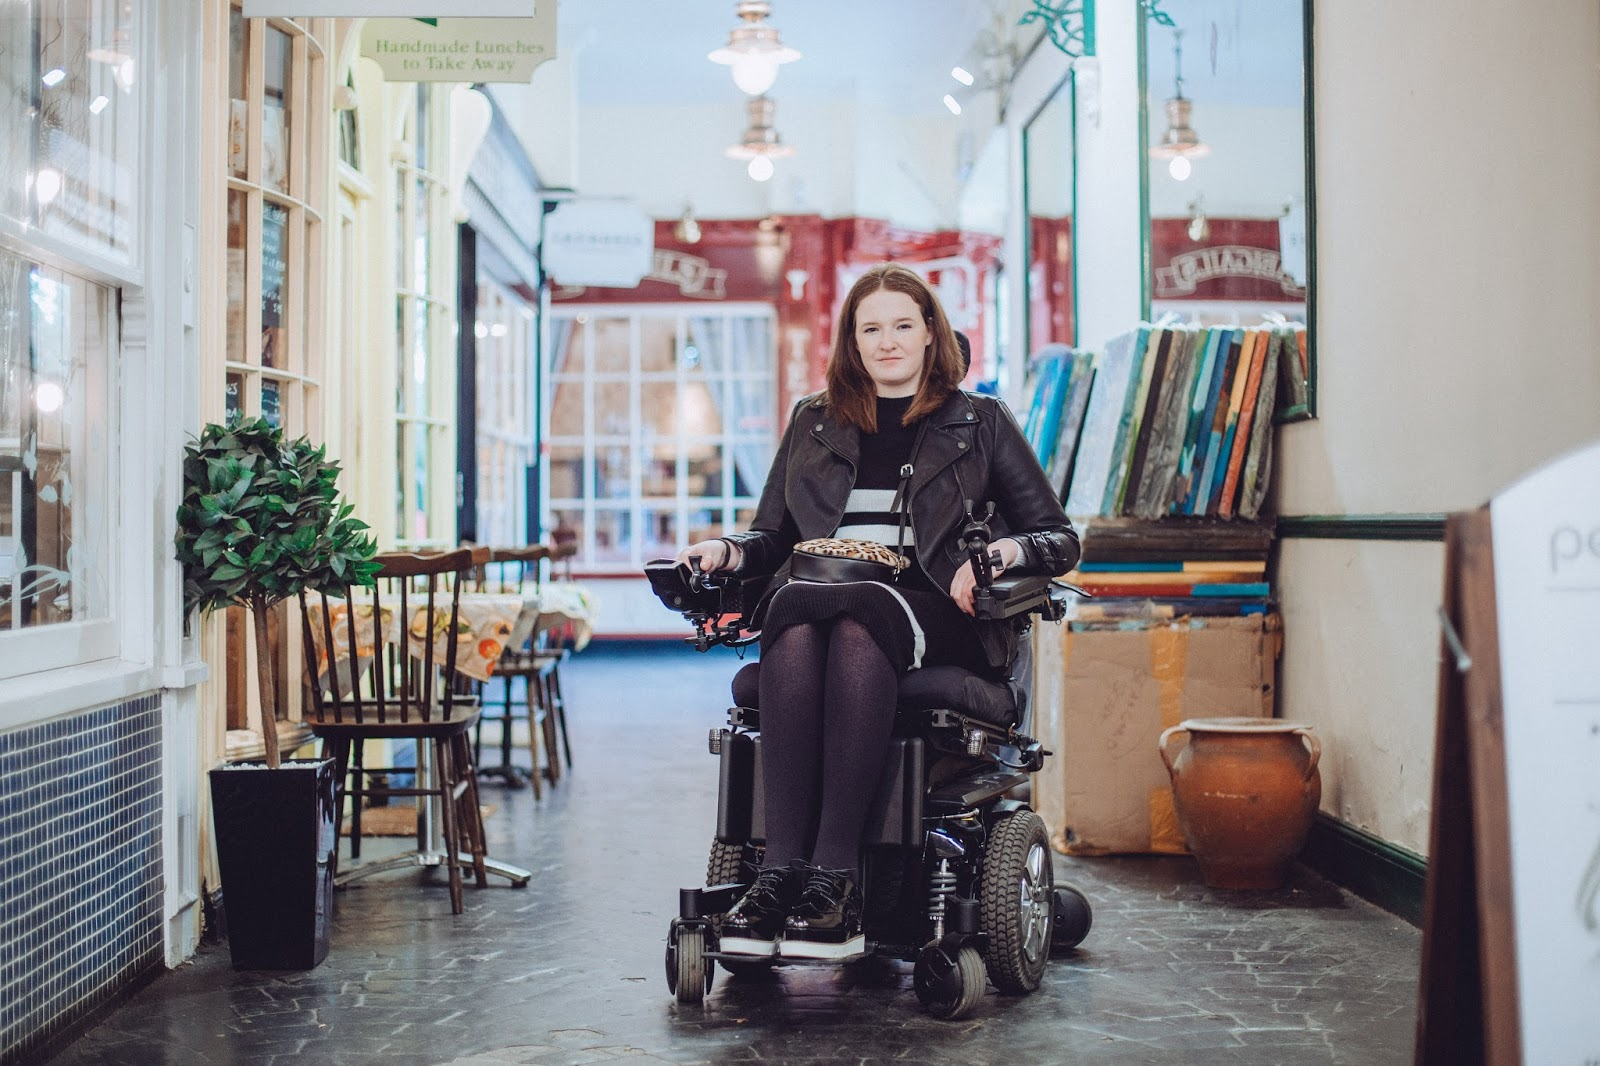 Shona is sitting in her powerchair, wearing a black midi dress with 3 white stripes and black and white flatform shoes, a leopard print bag rests on her lap. Shop fronts and tables and chairs can be seen to the left of her and behind her.